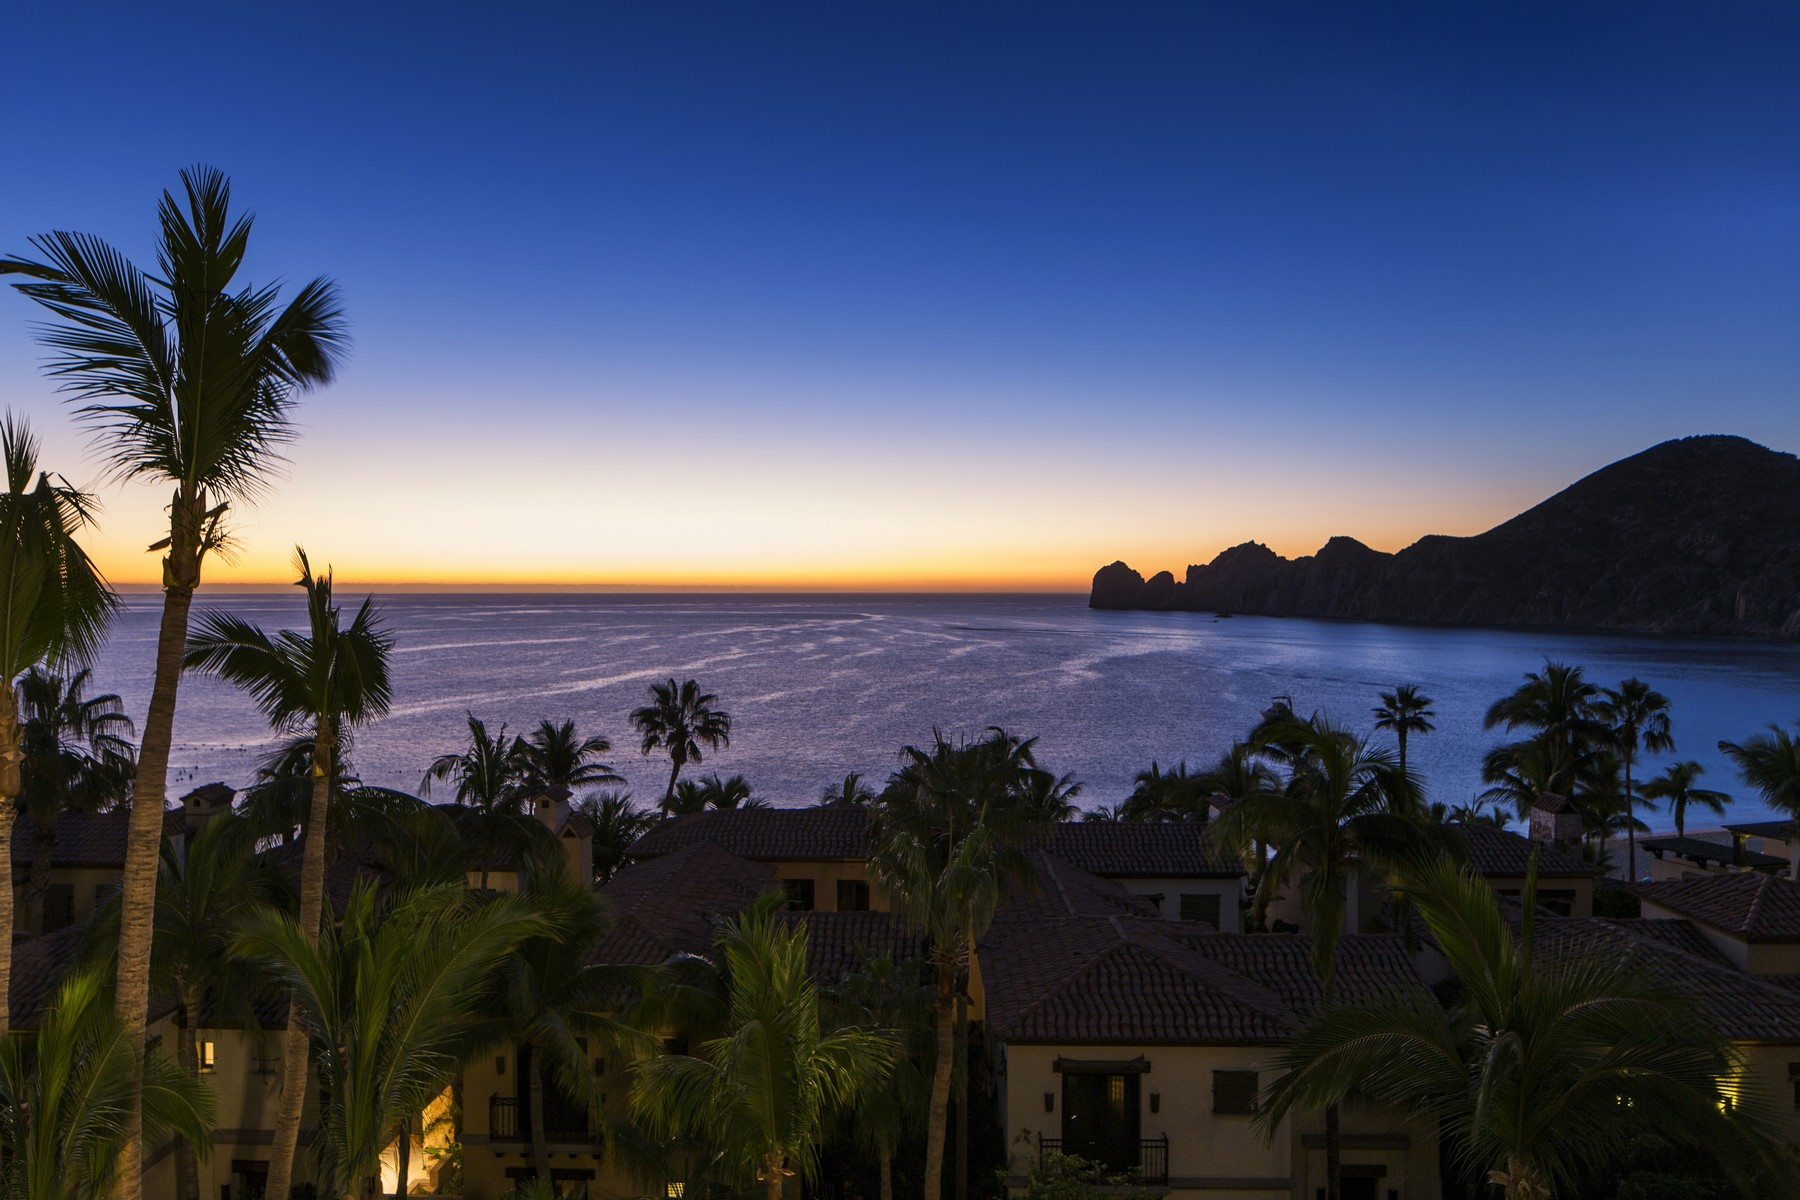 Other Residential for Rent at Collection 2303 Gomez Faria s/n El Medano Ejidal, Cabo San Lucas, Baja California Sur, 23453 Mexico